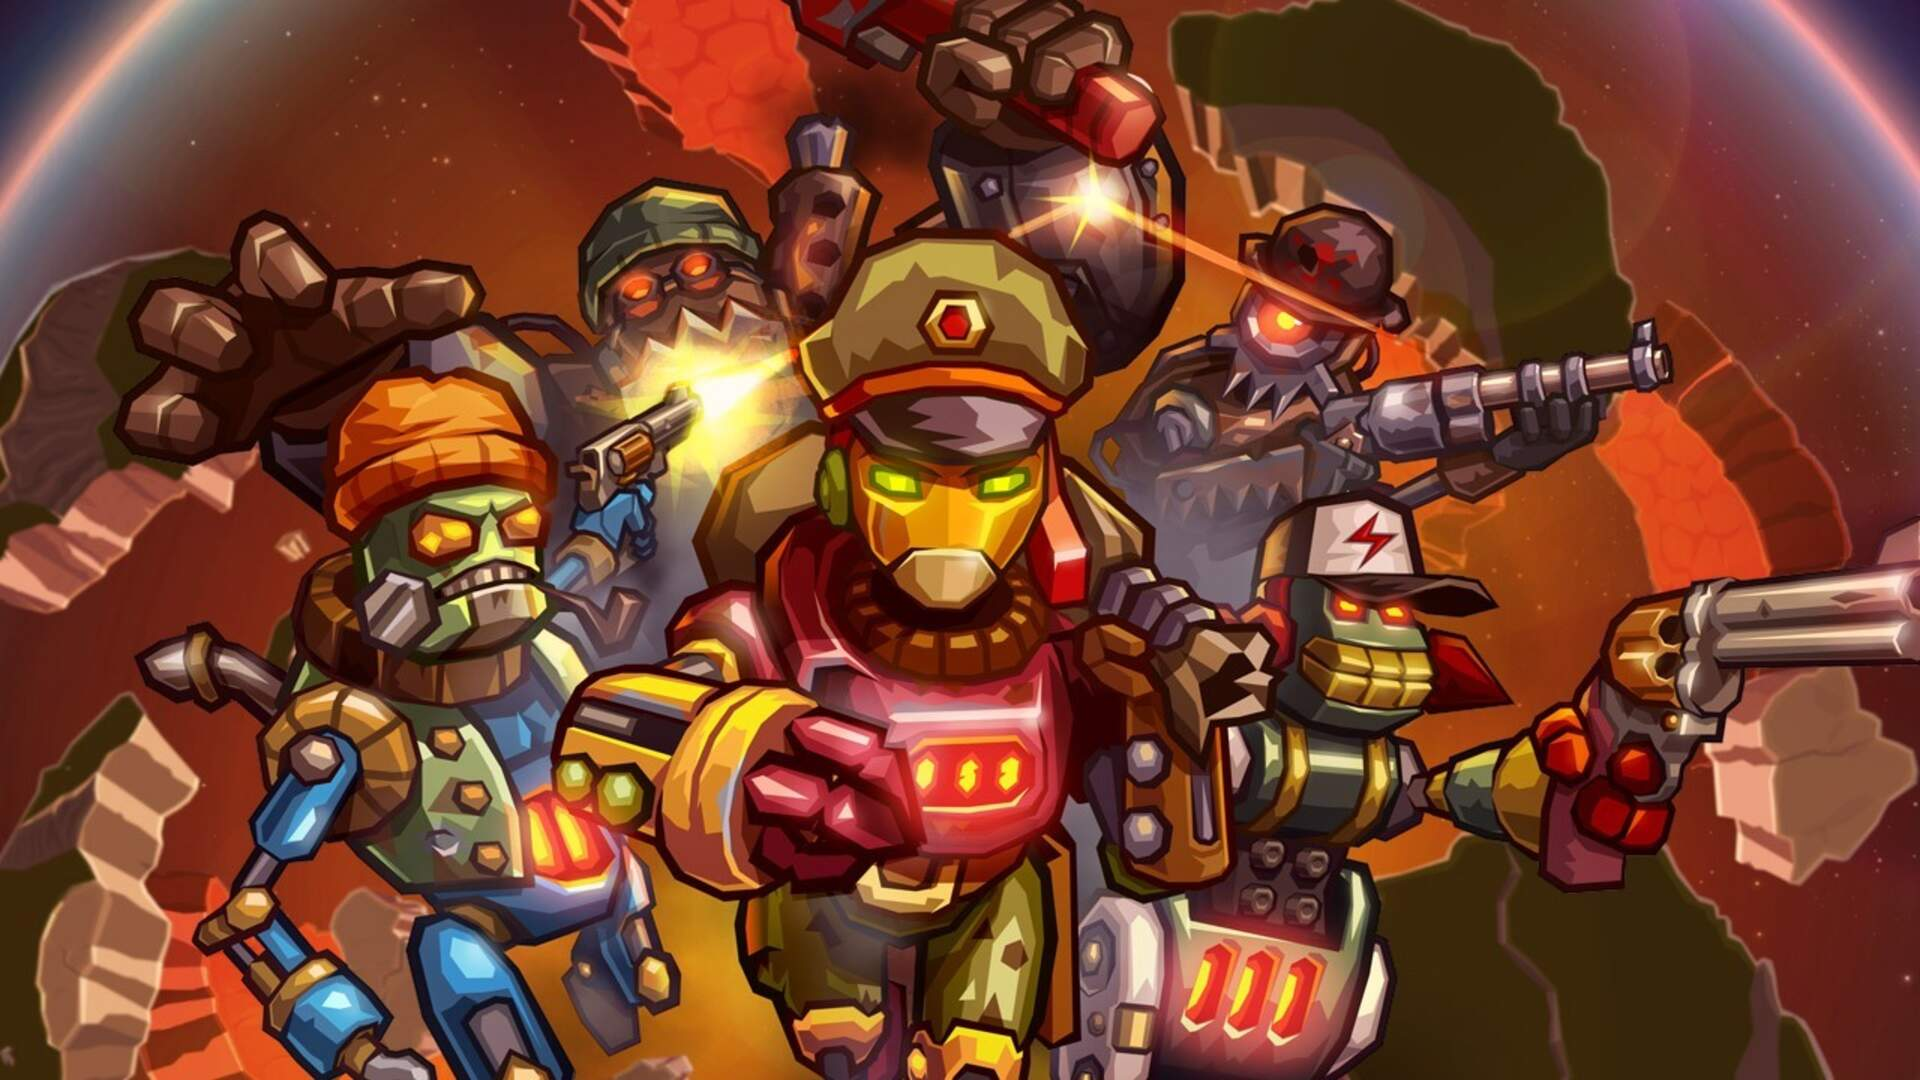 More SteamWorld Games Are Coming, and We'd Drink Motor Oil for SteamWorld Heist 2